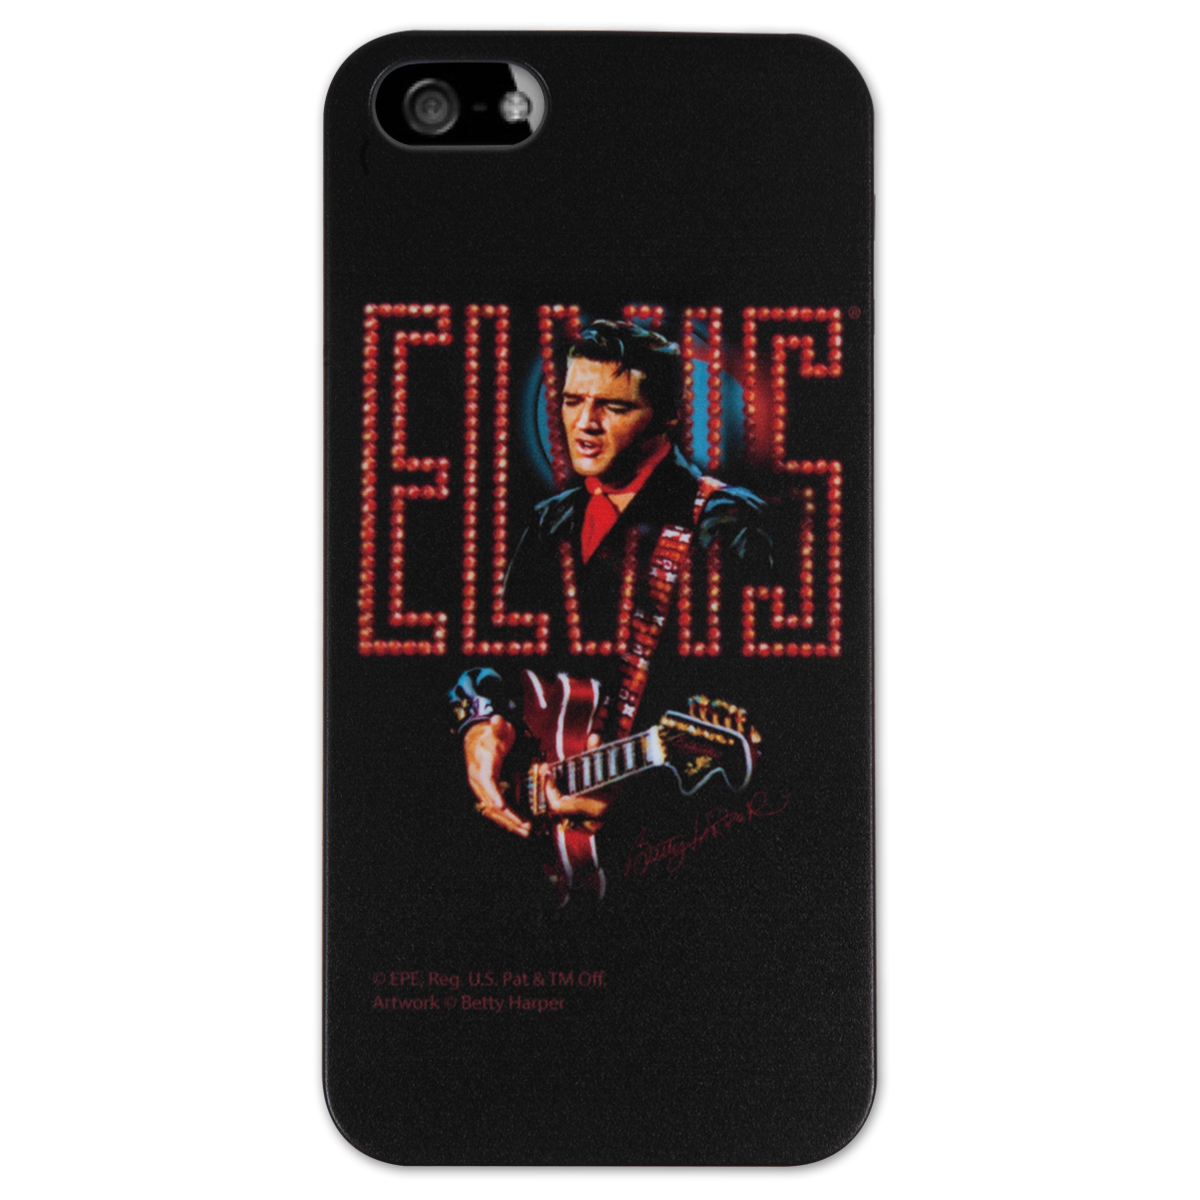 Elvis '68 Special iPhone 5 Case